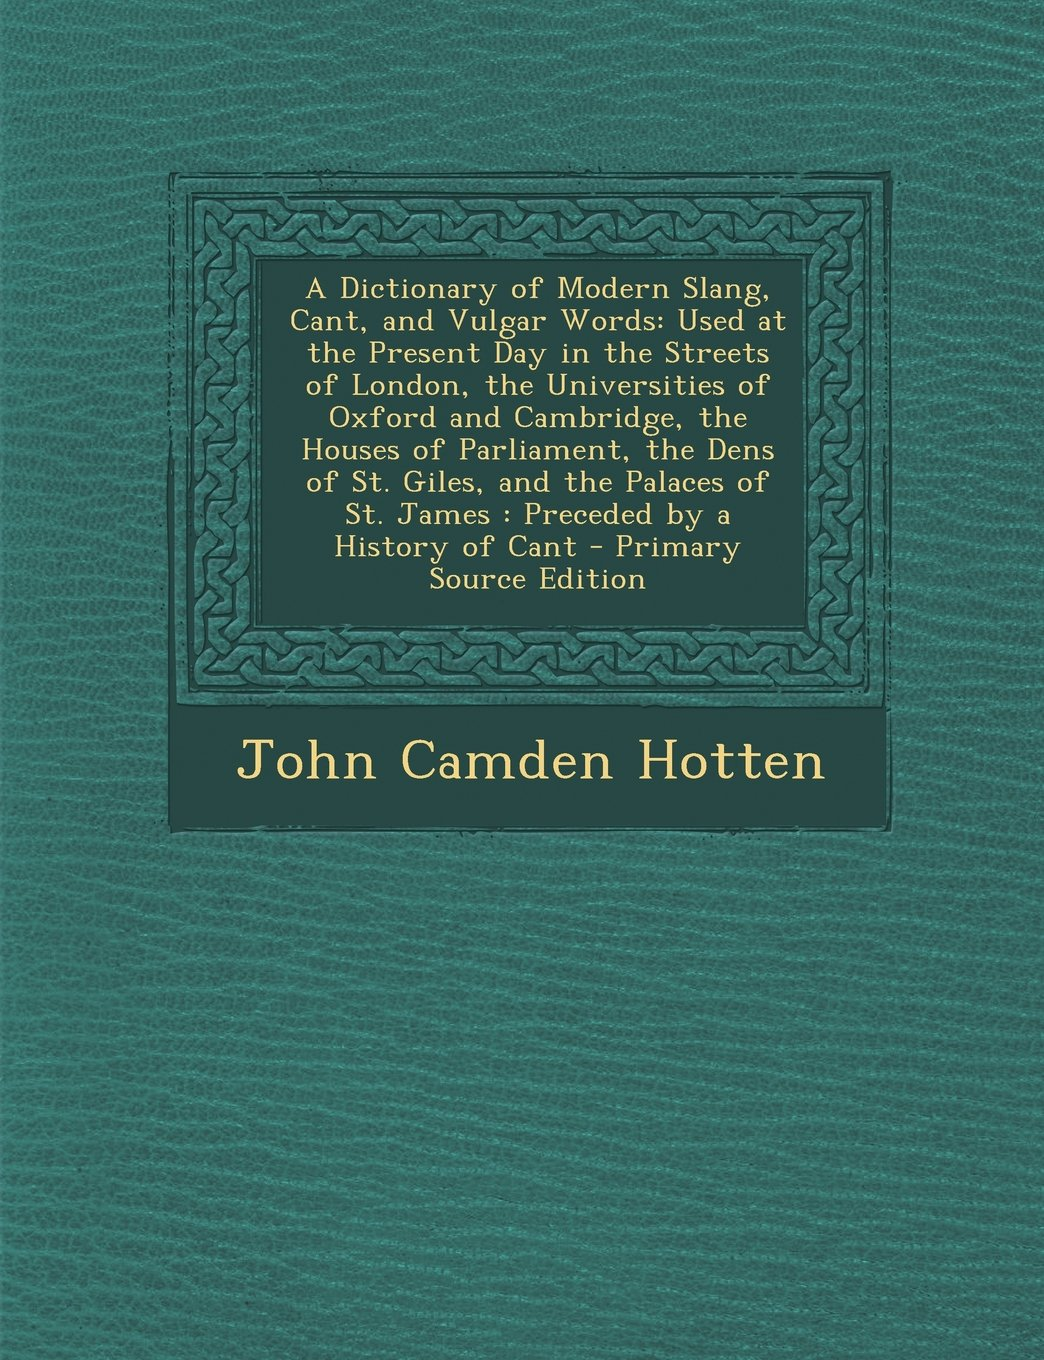 Download A Dictionary of Modern Slang, Cant, and Vulgar Words: Used at the Present Day in the Streets of London, the Universities of Oxford and Cambridge, the ... of St. James : Preceded by a History of Cant ebook